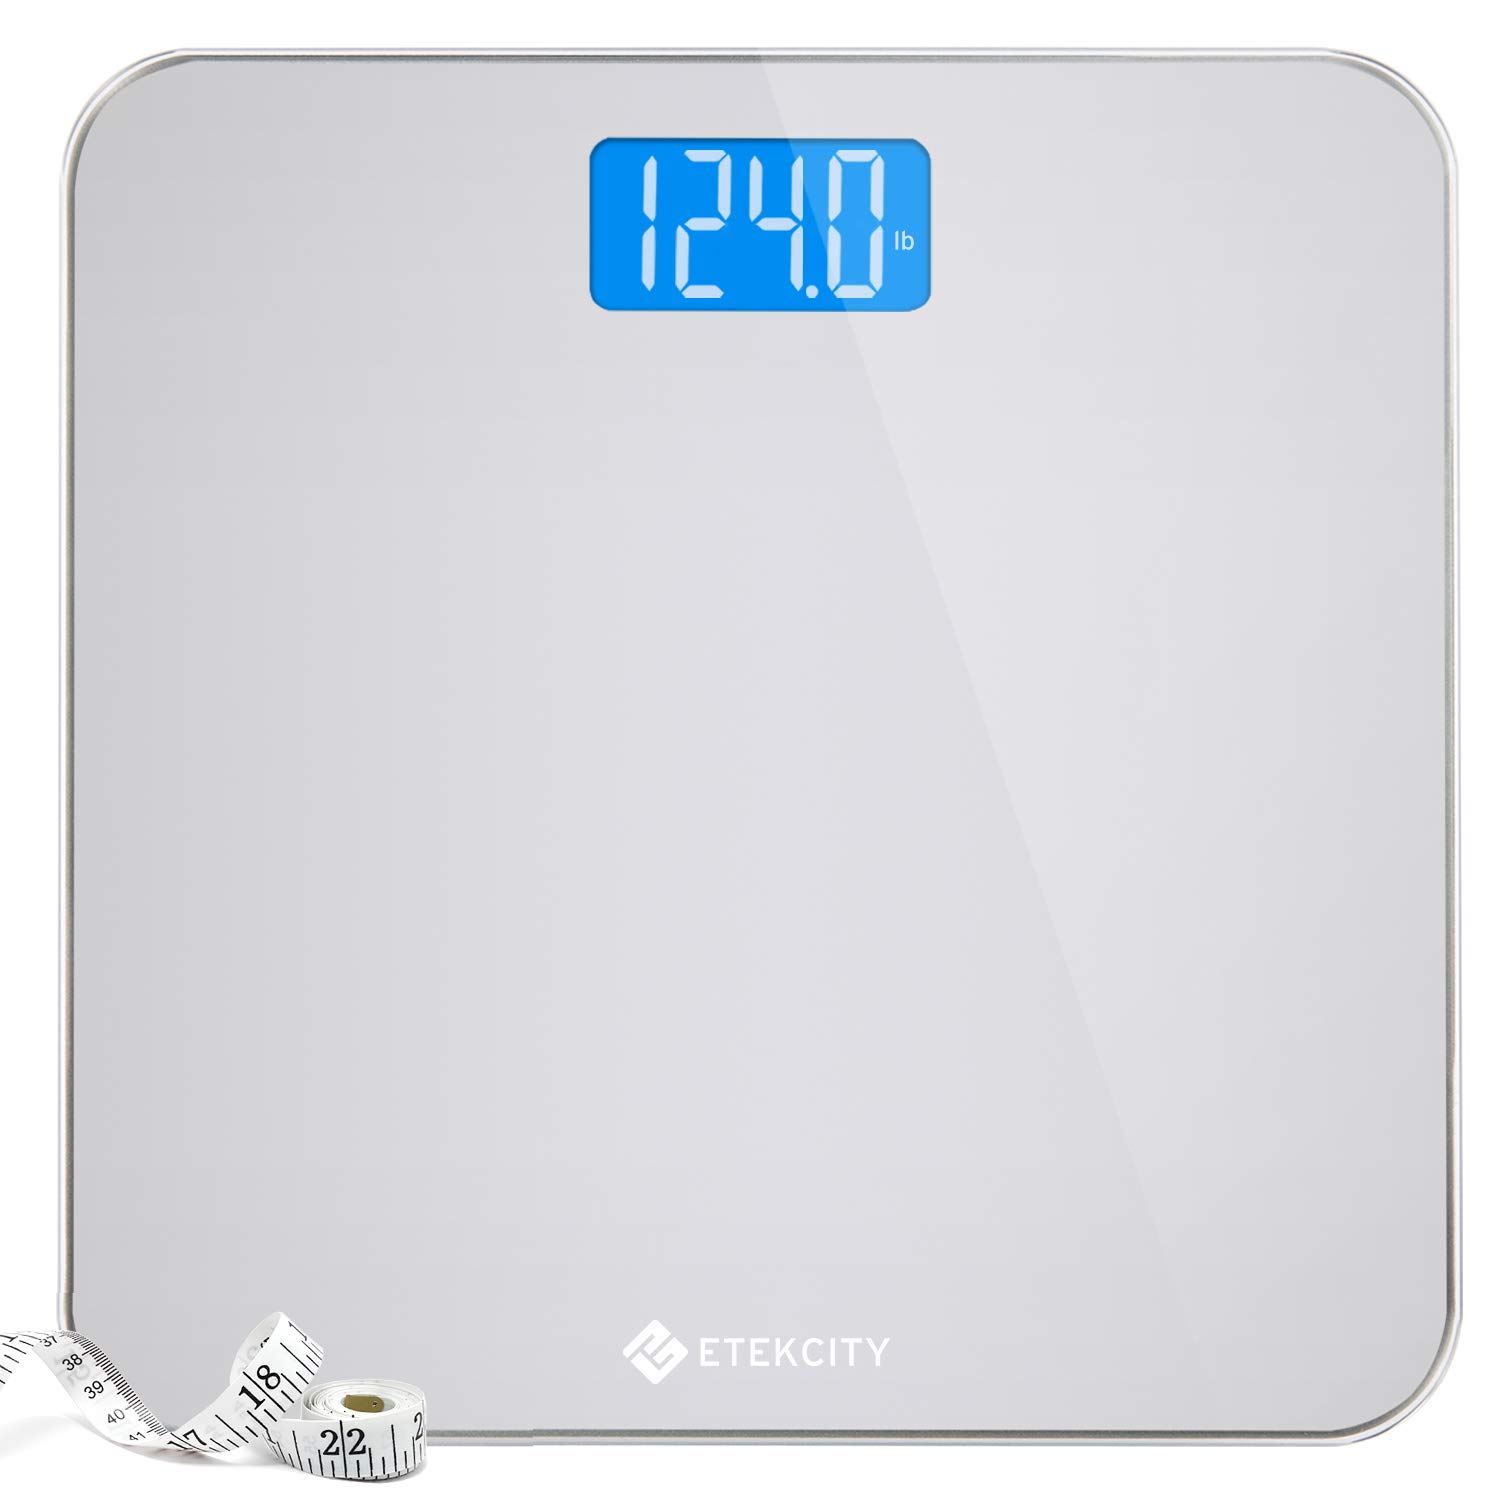 Etekcity Digital Body Weight Bathroom Scale with Body Tape Measure and Round Corner Design, Large Blue LCD Backlight…